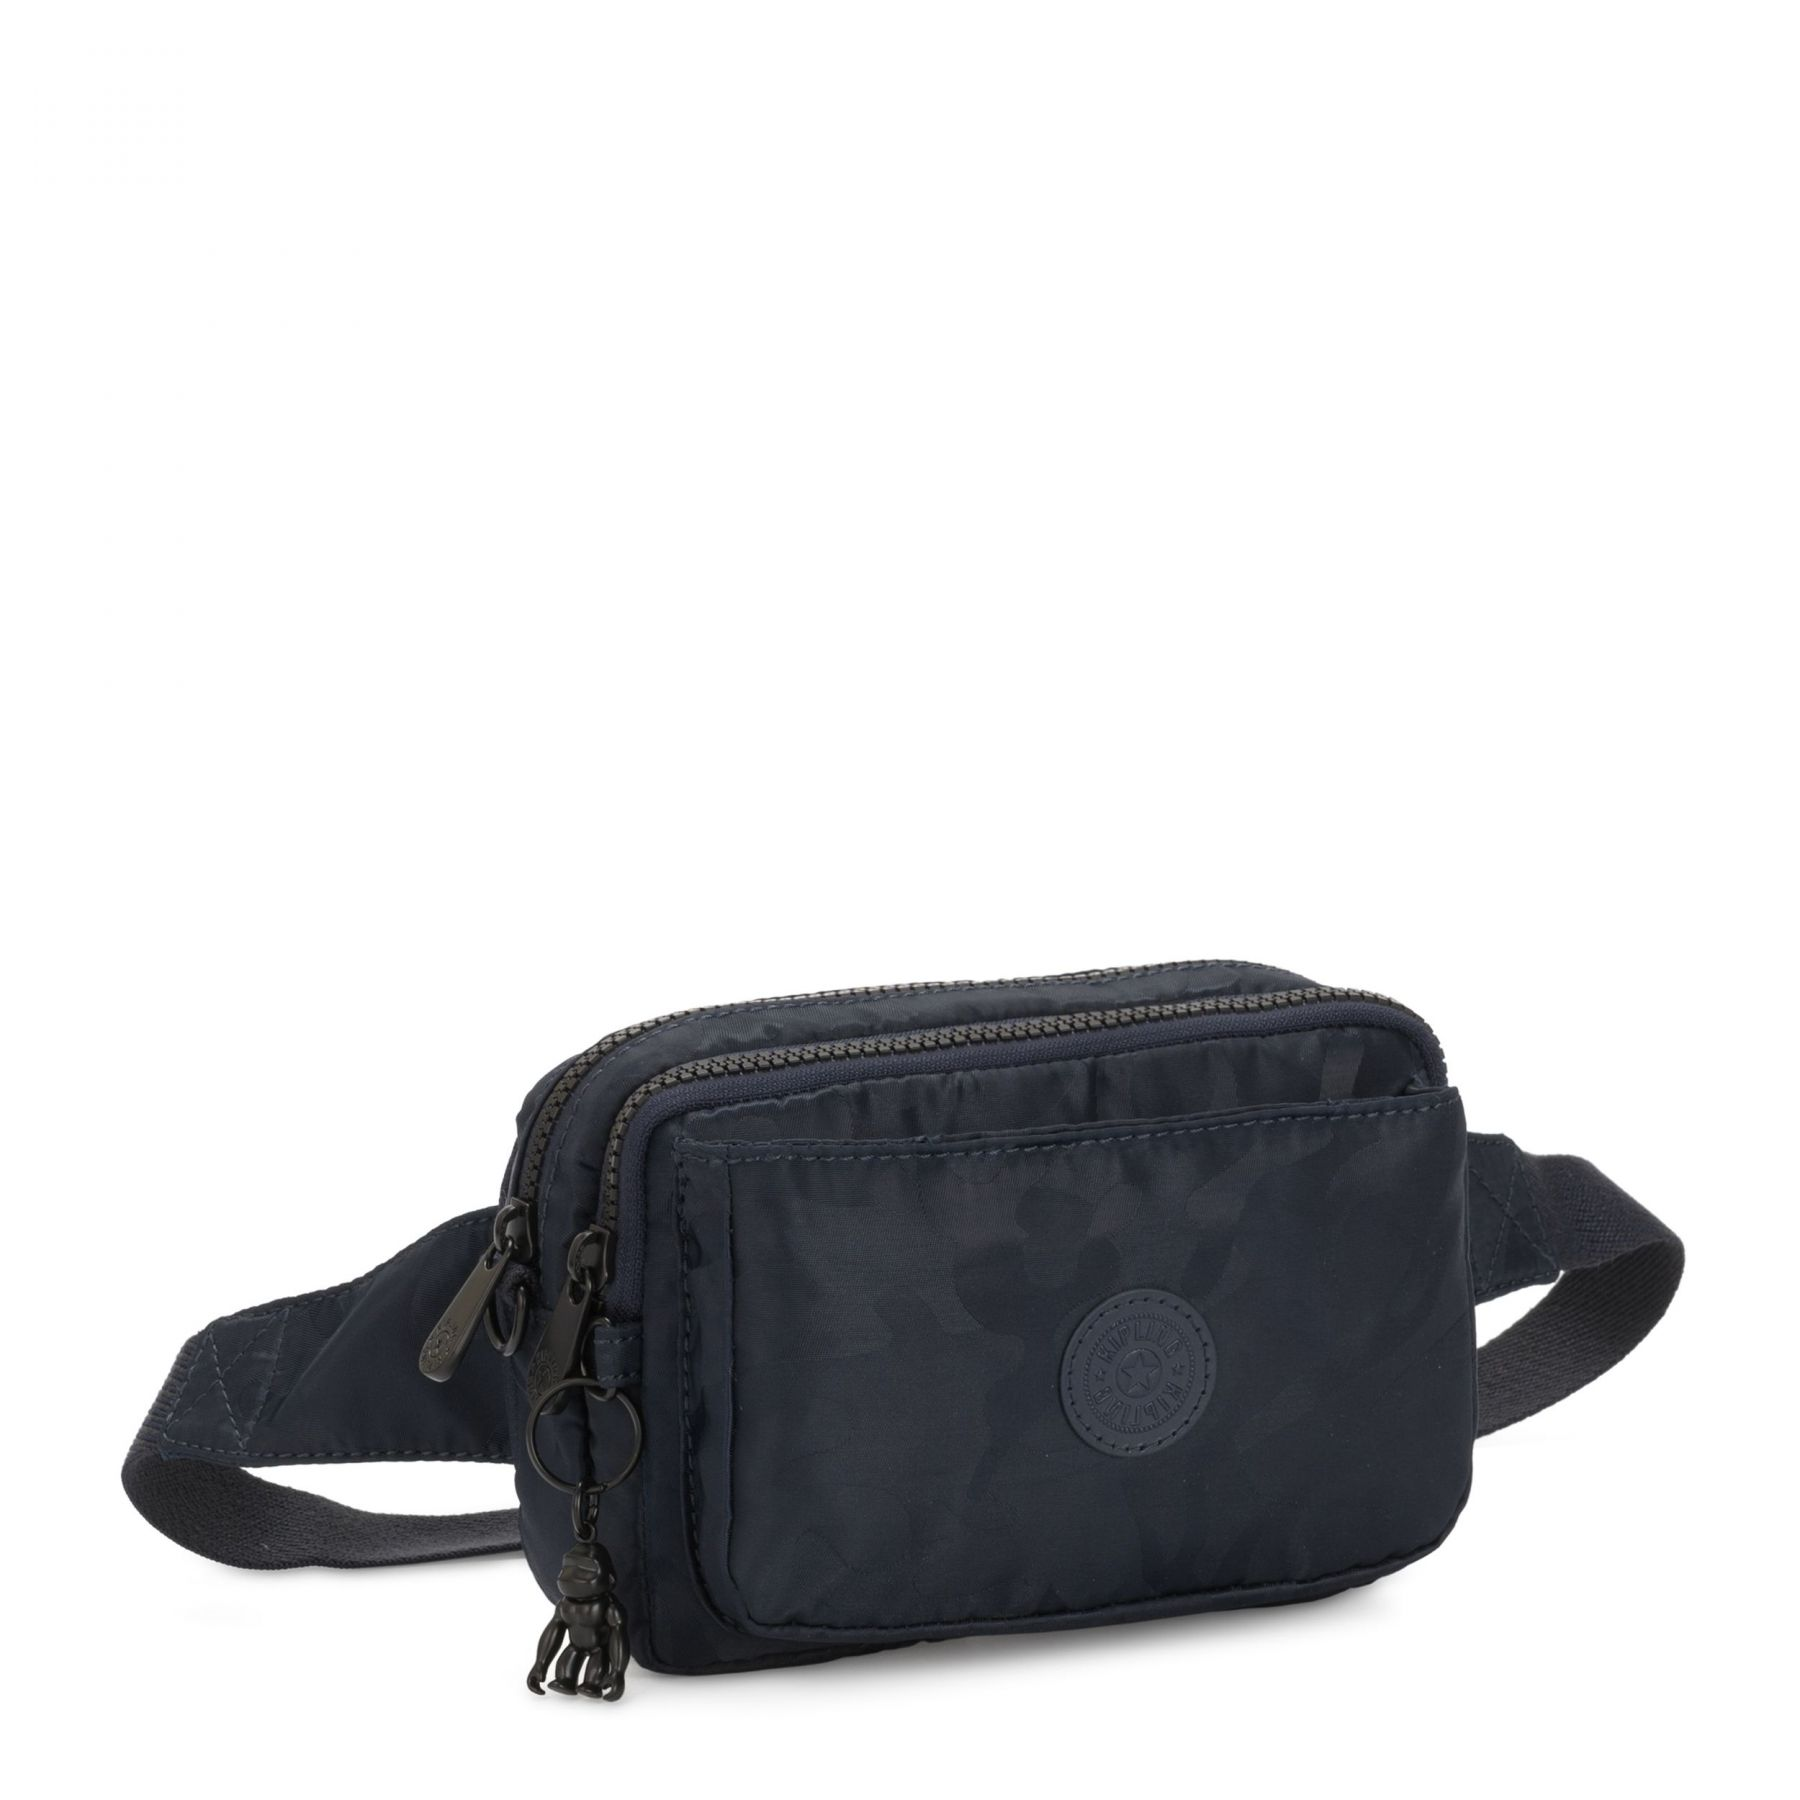 ABANU MULTI Latest Shoulder Bags by Kipling